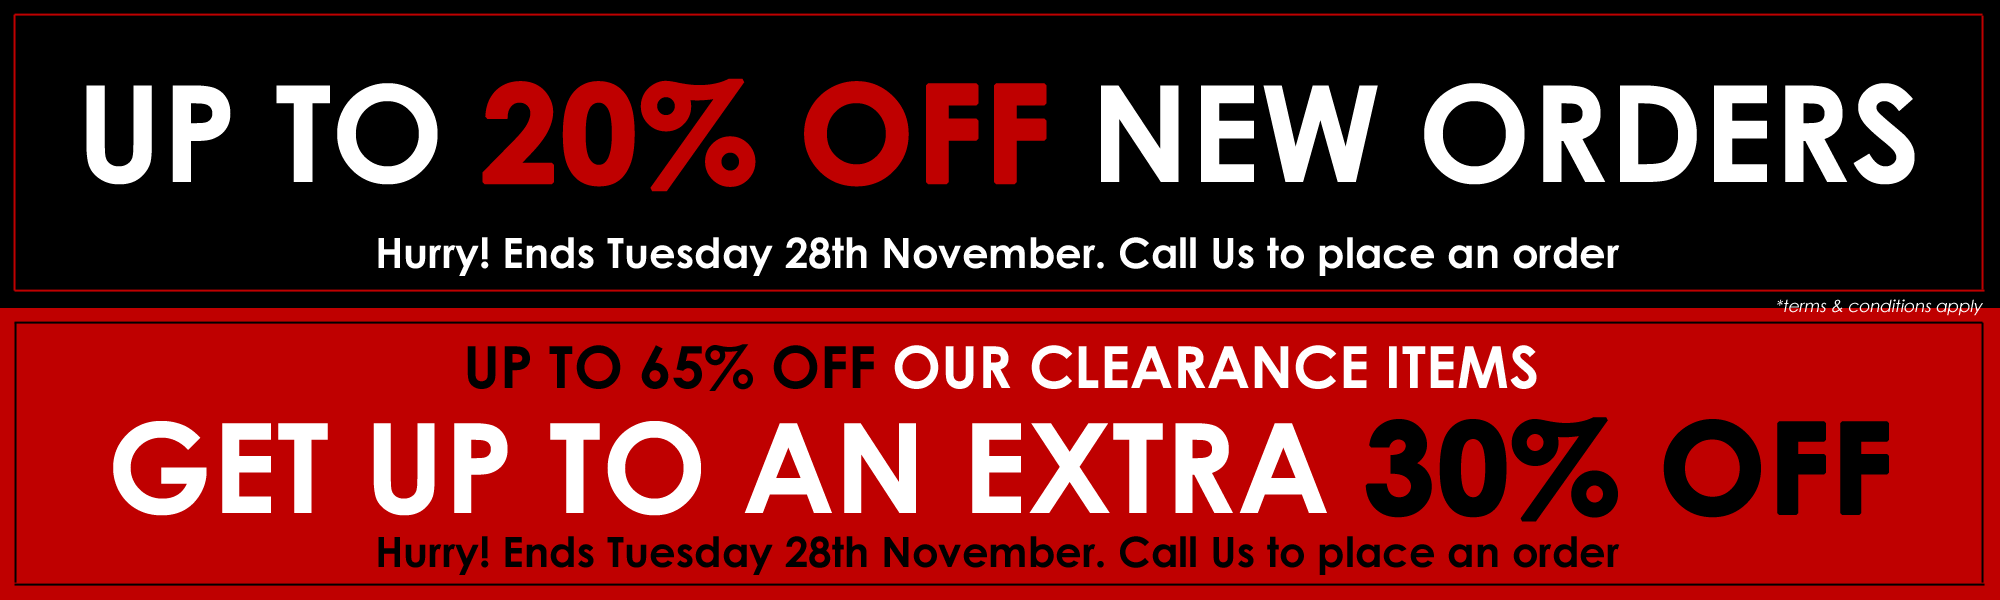 Clearance & New Orders Offer